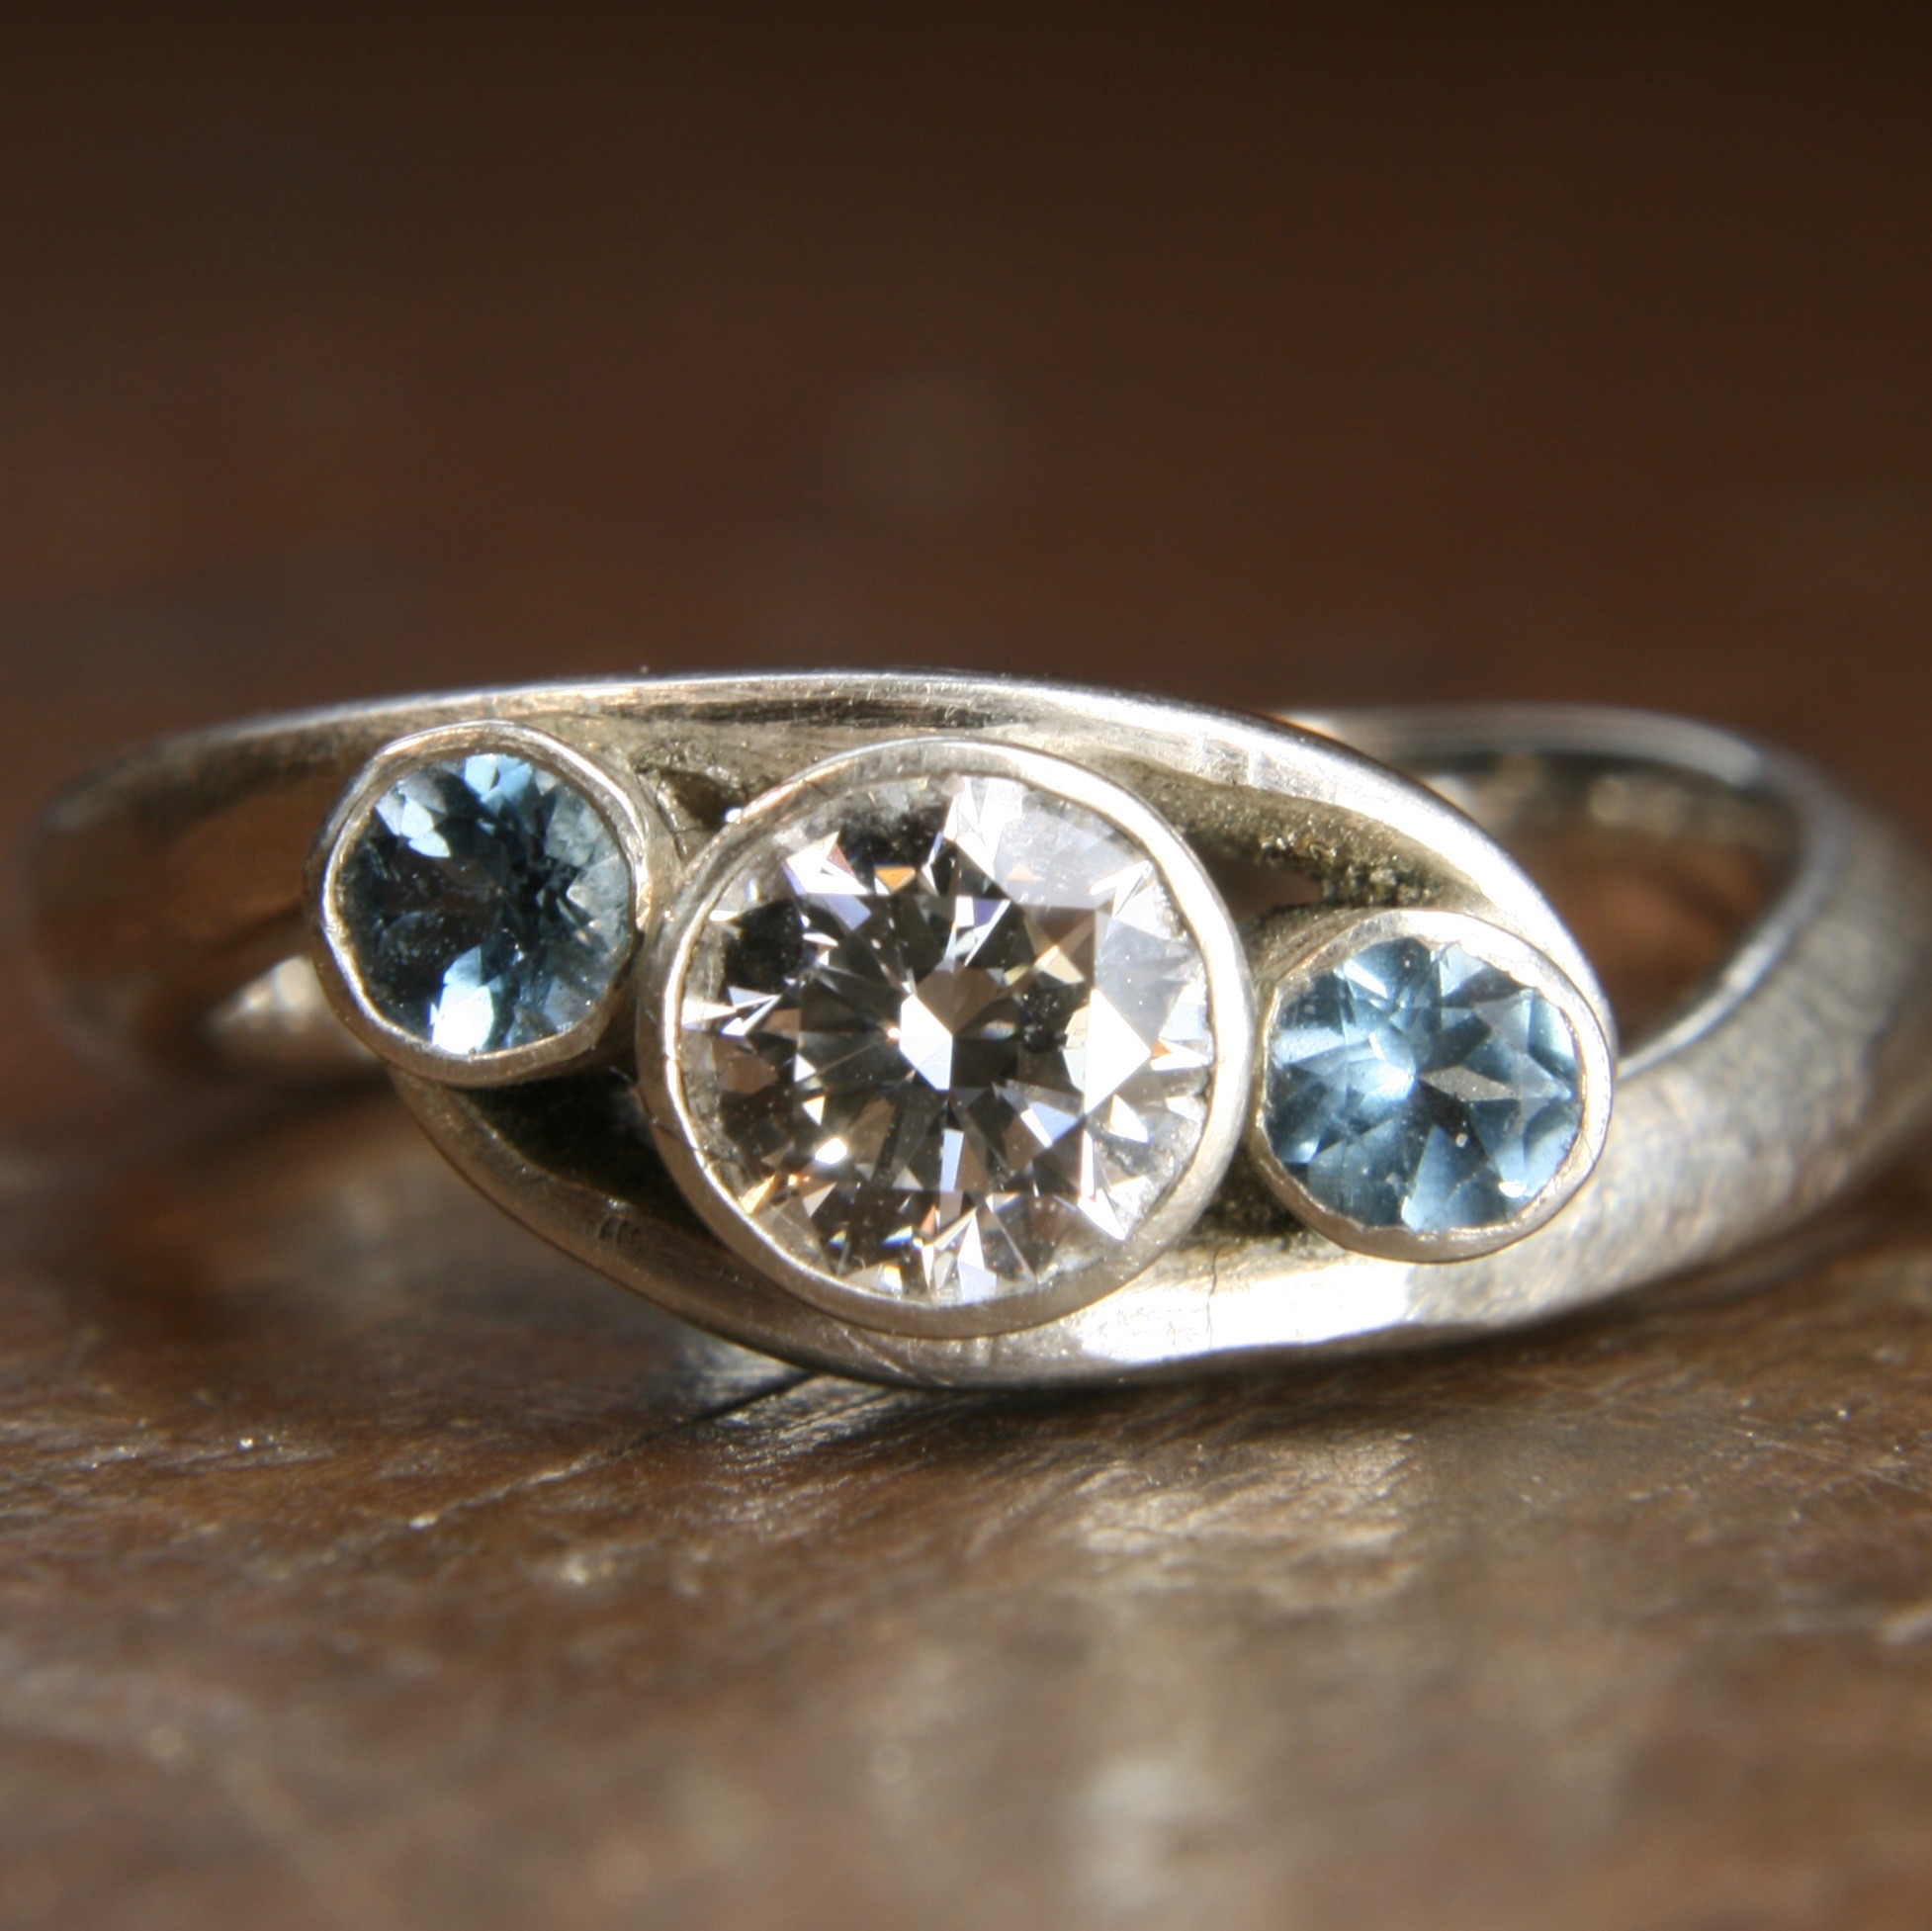 Bespoke moissanite and aquamarine twist ring